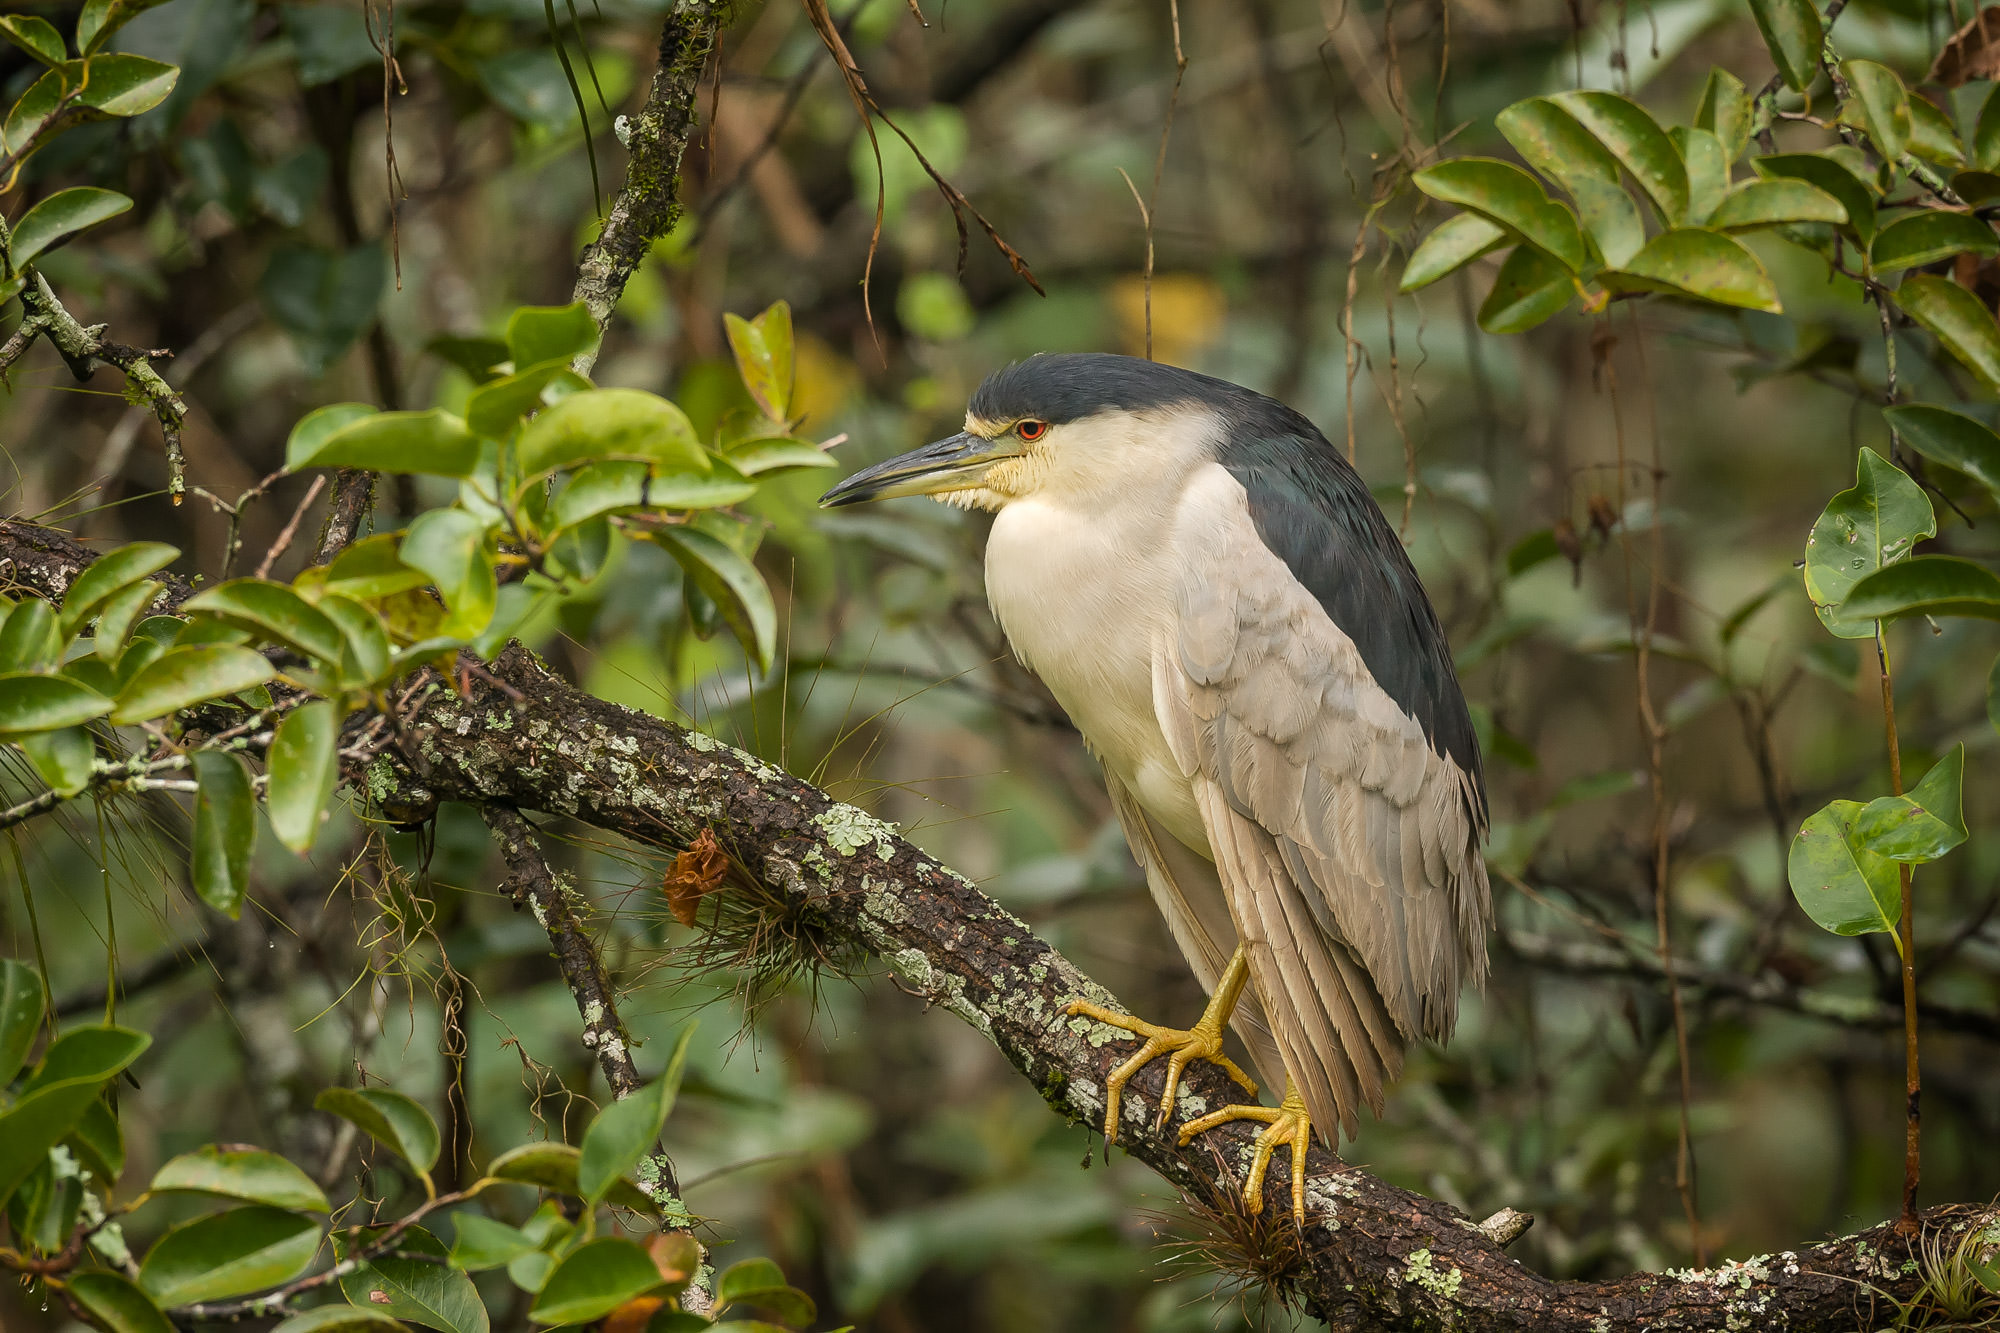 Heron Fine Art Bird Photography A Limited Edition photograph of a Black-Crowned Night Heron perched in the trees in Southwest...